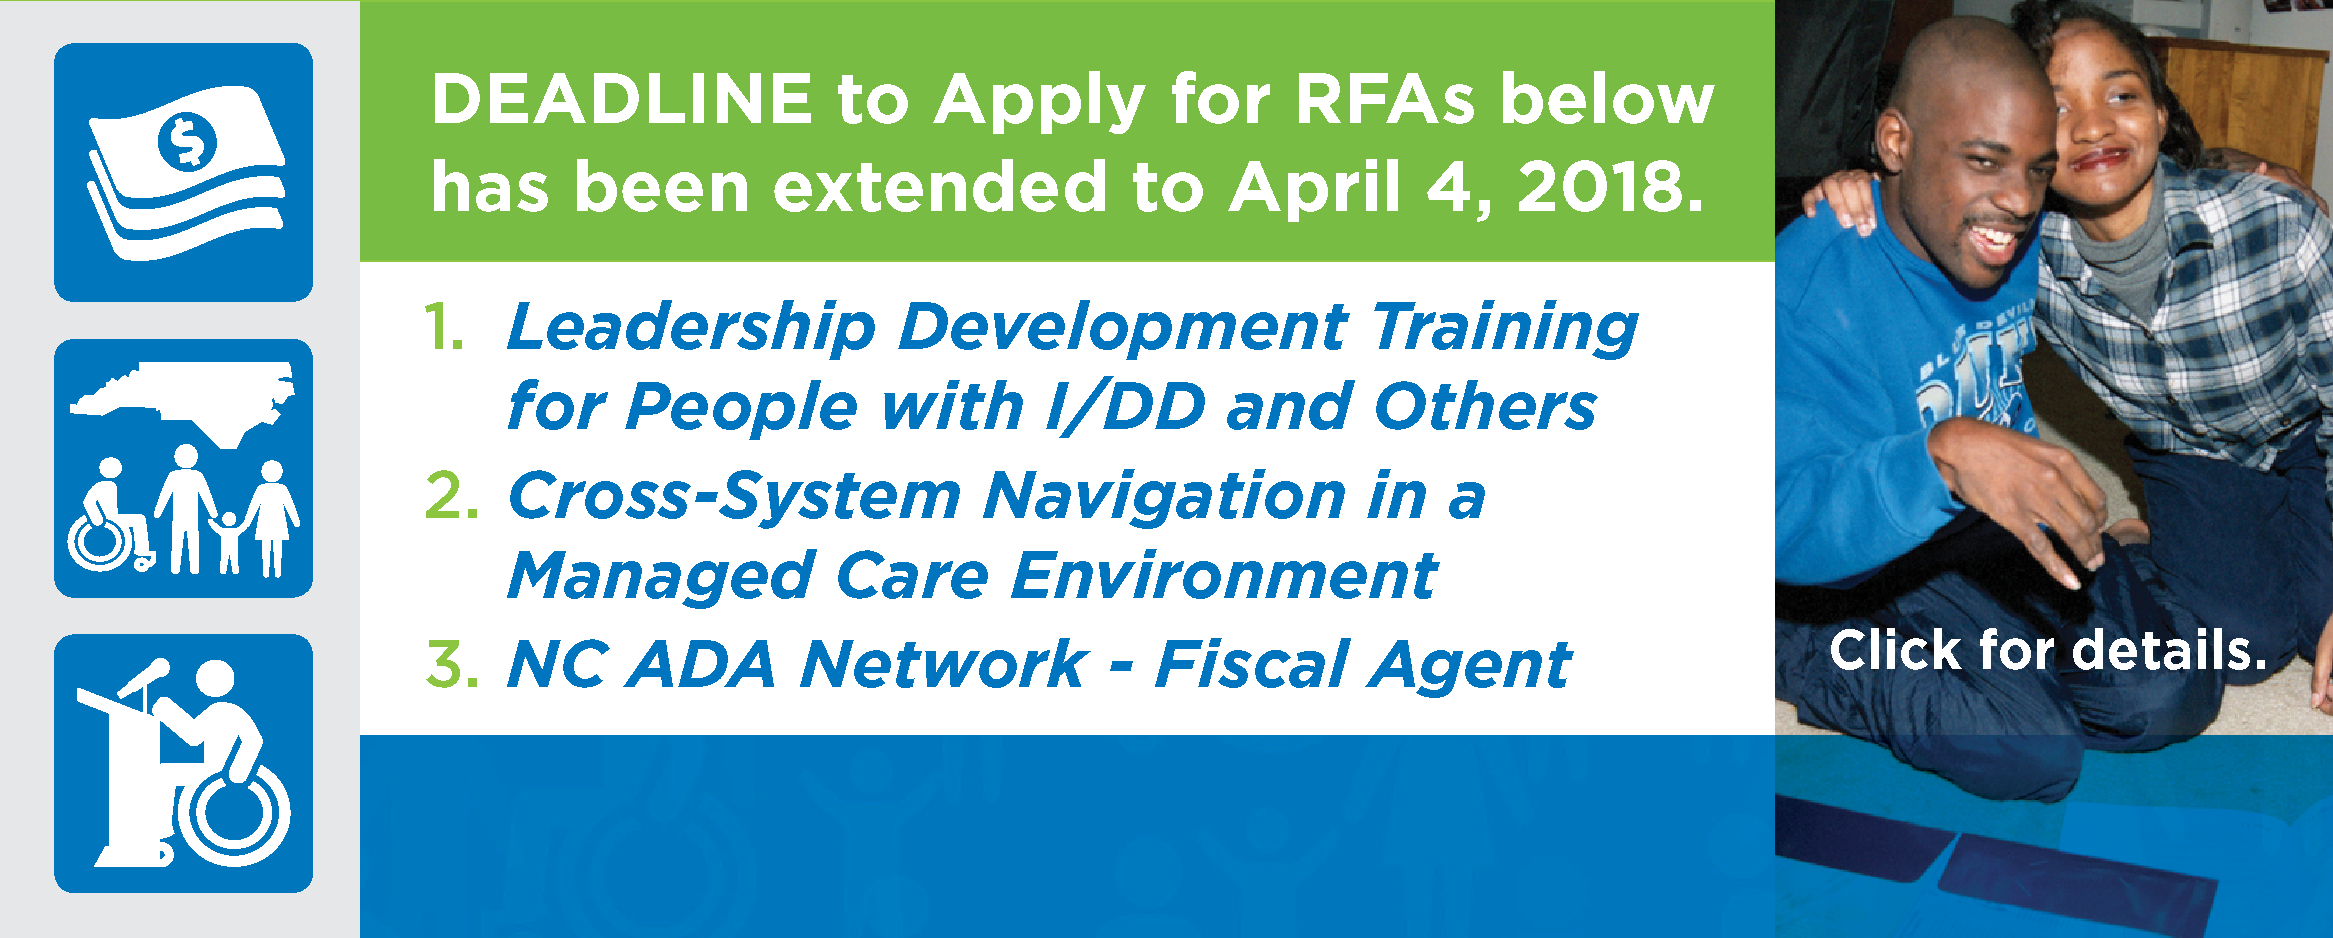 NCCDD Announces Three More Grant Opportunities: Leadership Development Training for People with I/DD and Others; 2. Cross-System Navigation in a Managed Care Environment; 3. NC ADA Network - Fiscal Agent; Deadline extended to April 4, 20